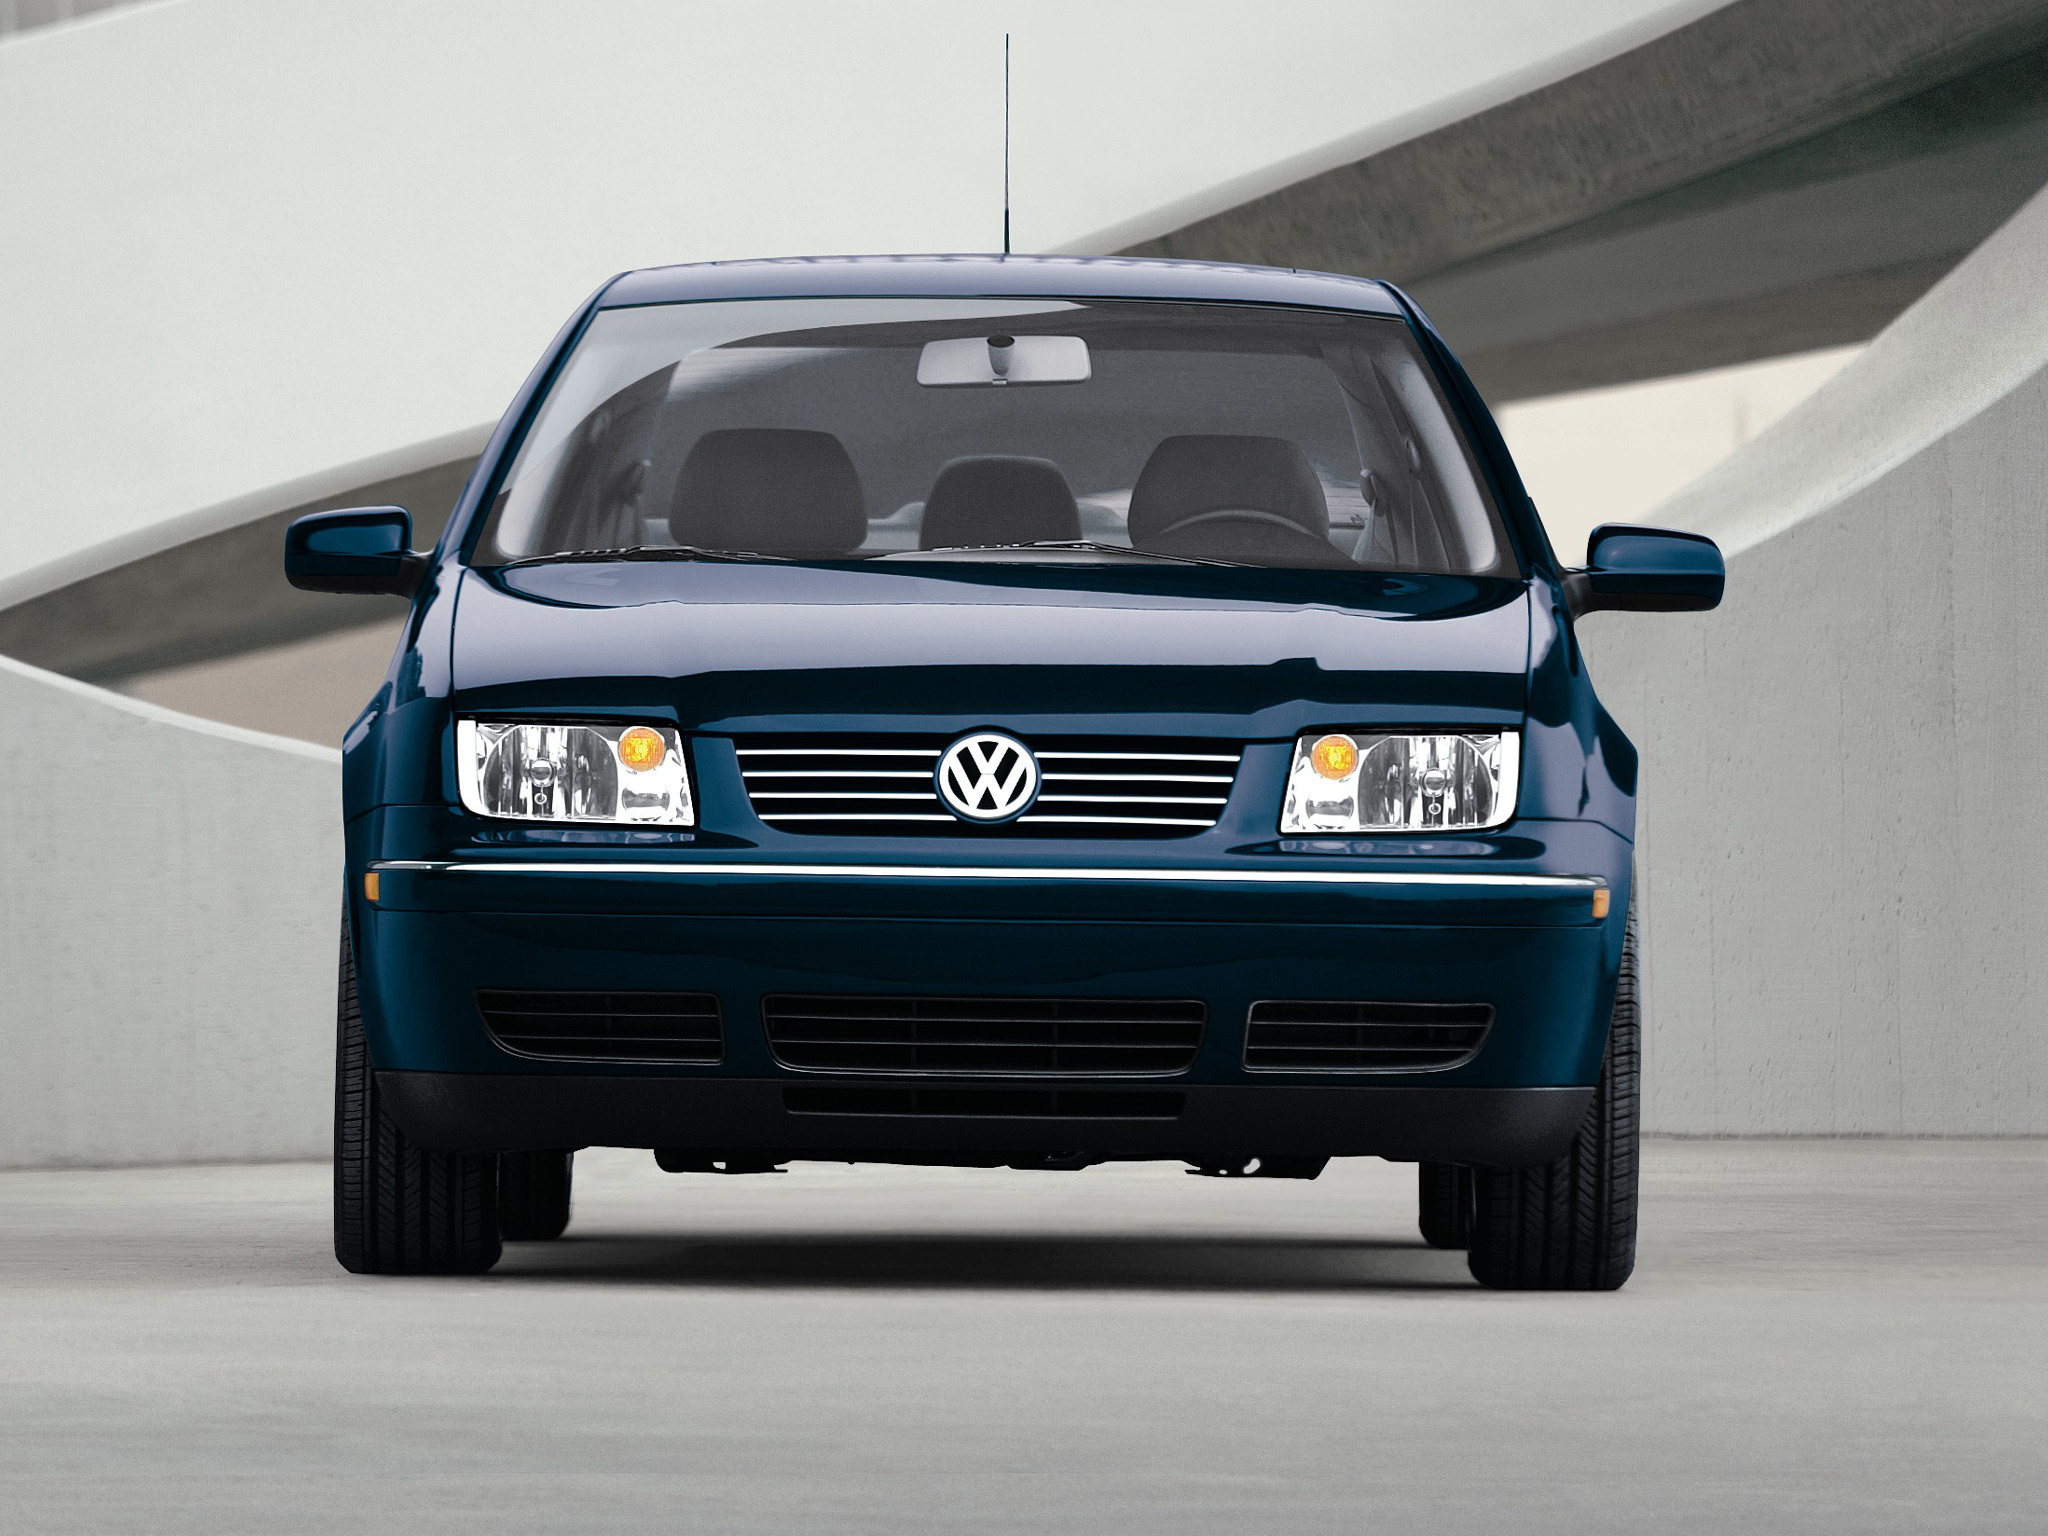 Volkswagen Jetta photo 95037